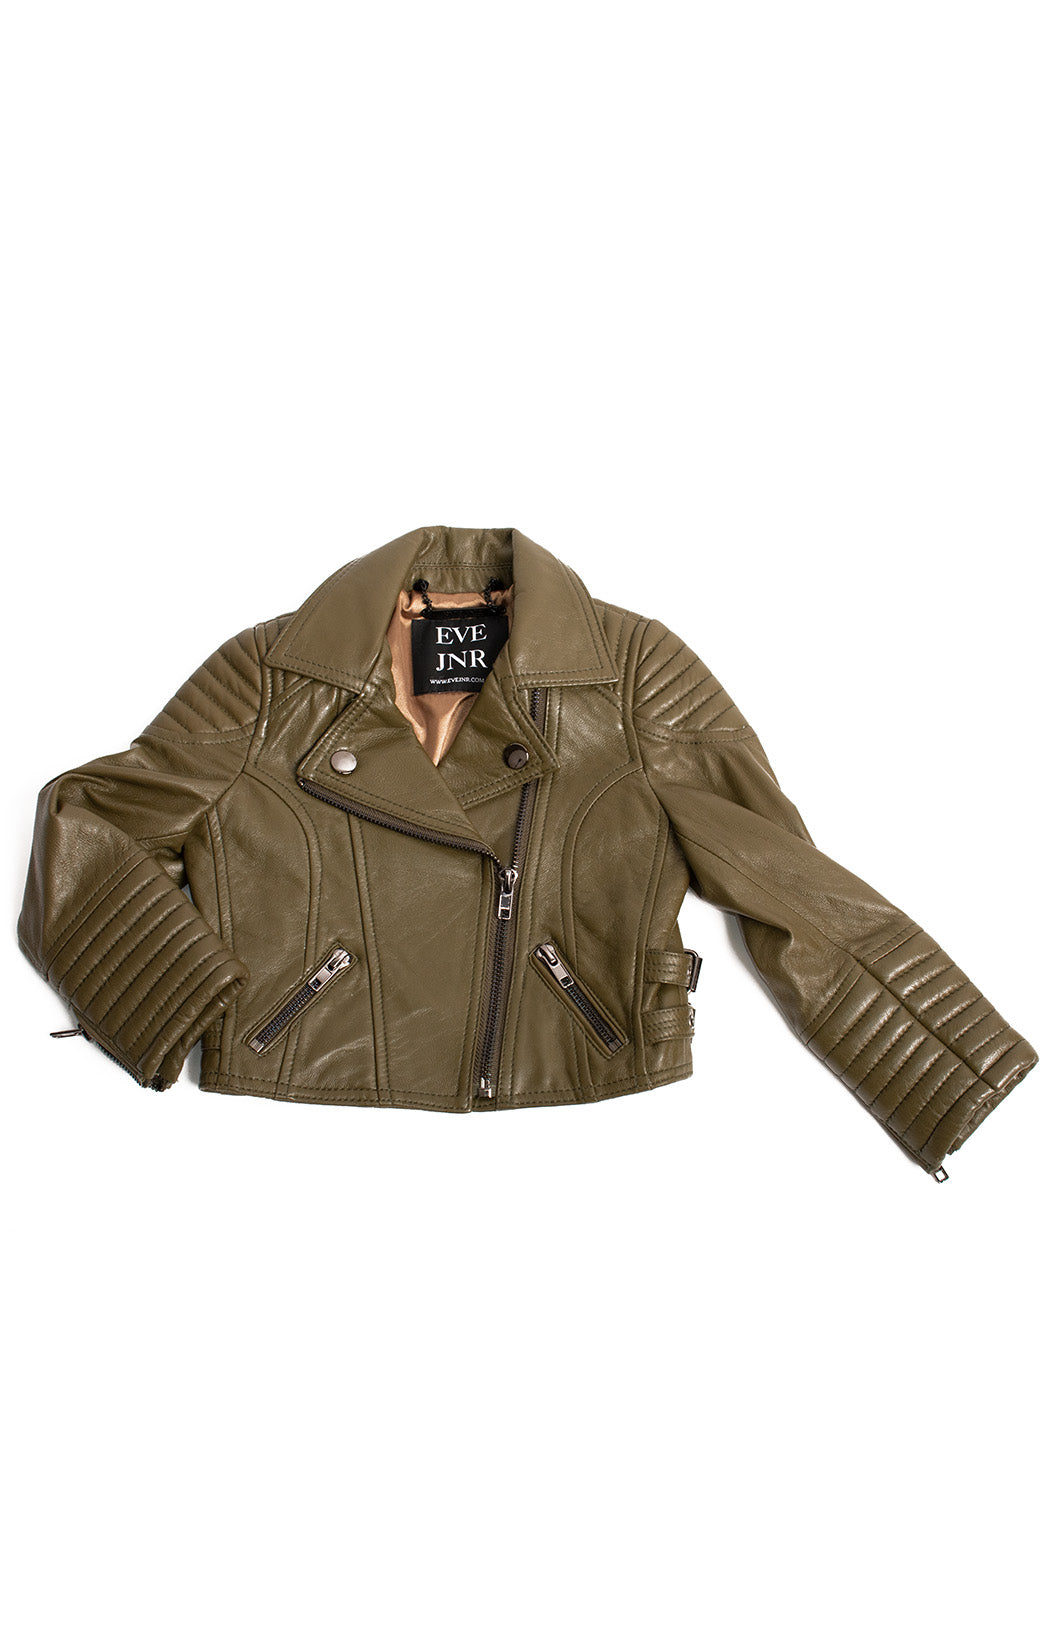 Front view of EVEJNR Jacket Size: 3 boys